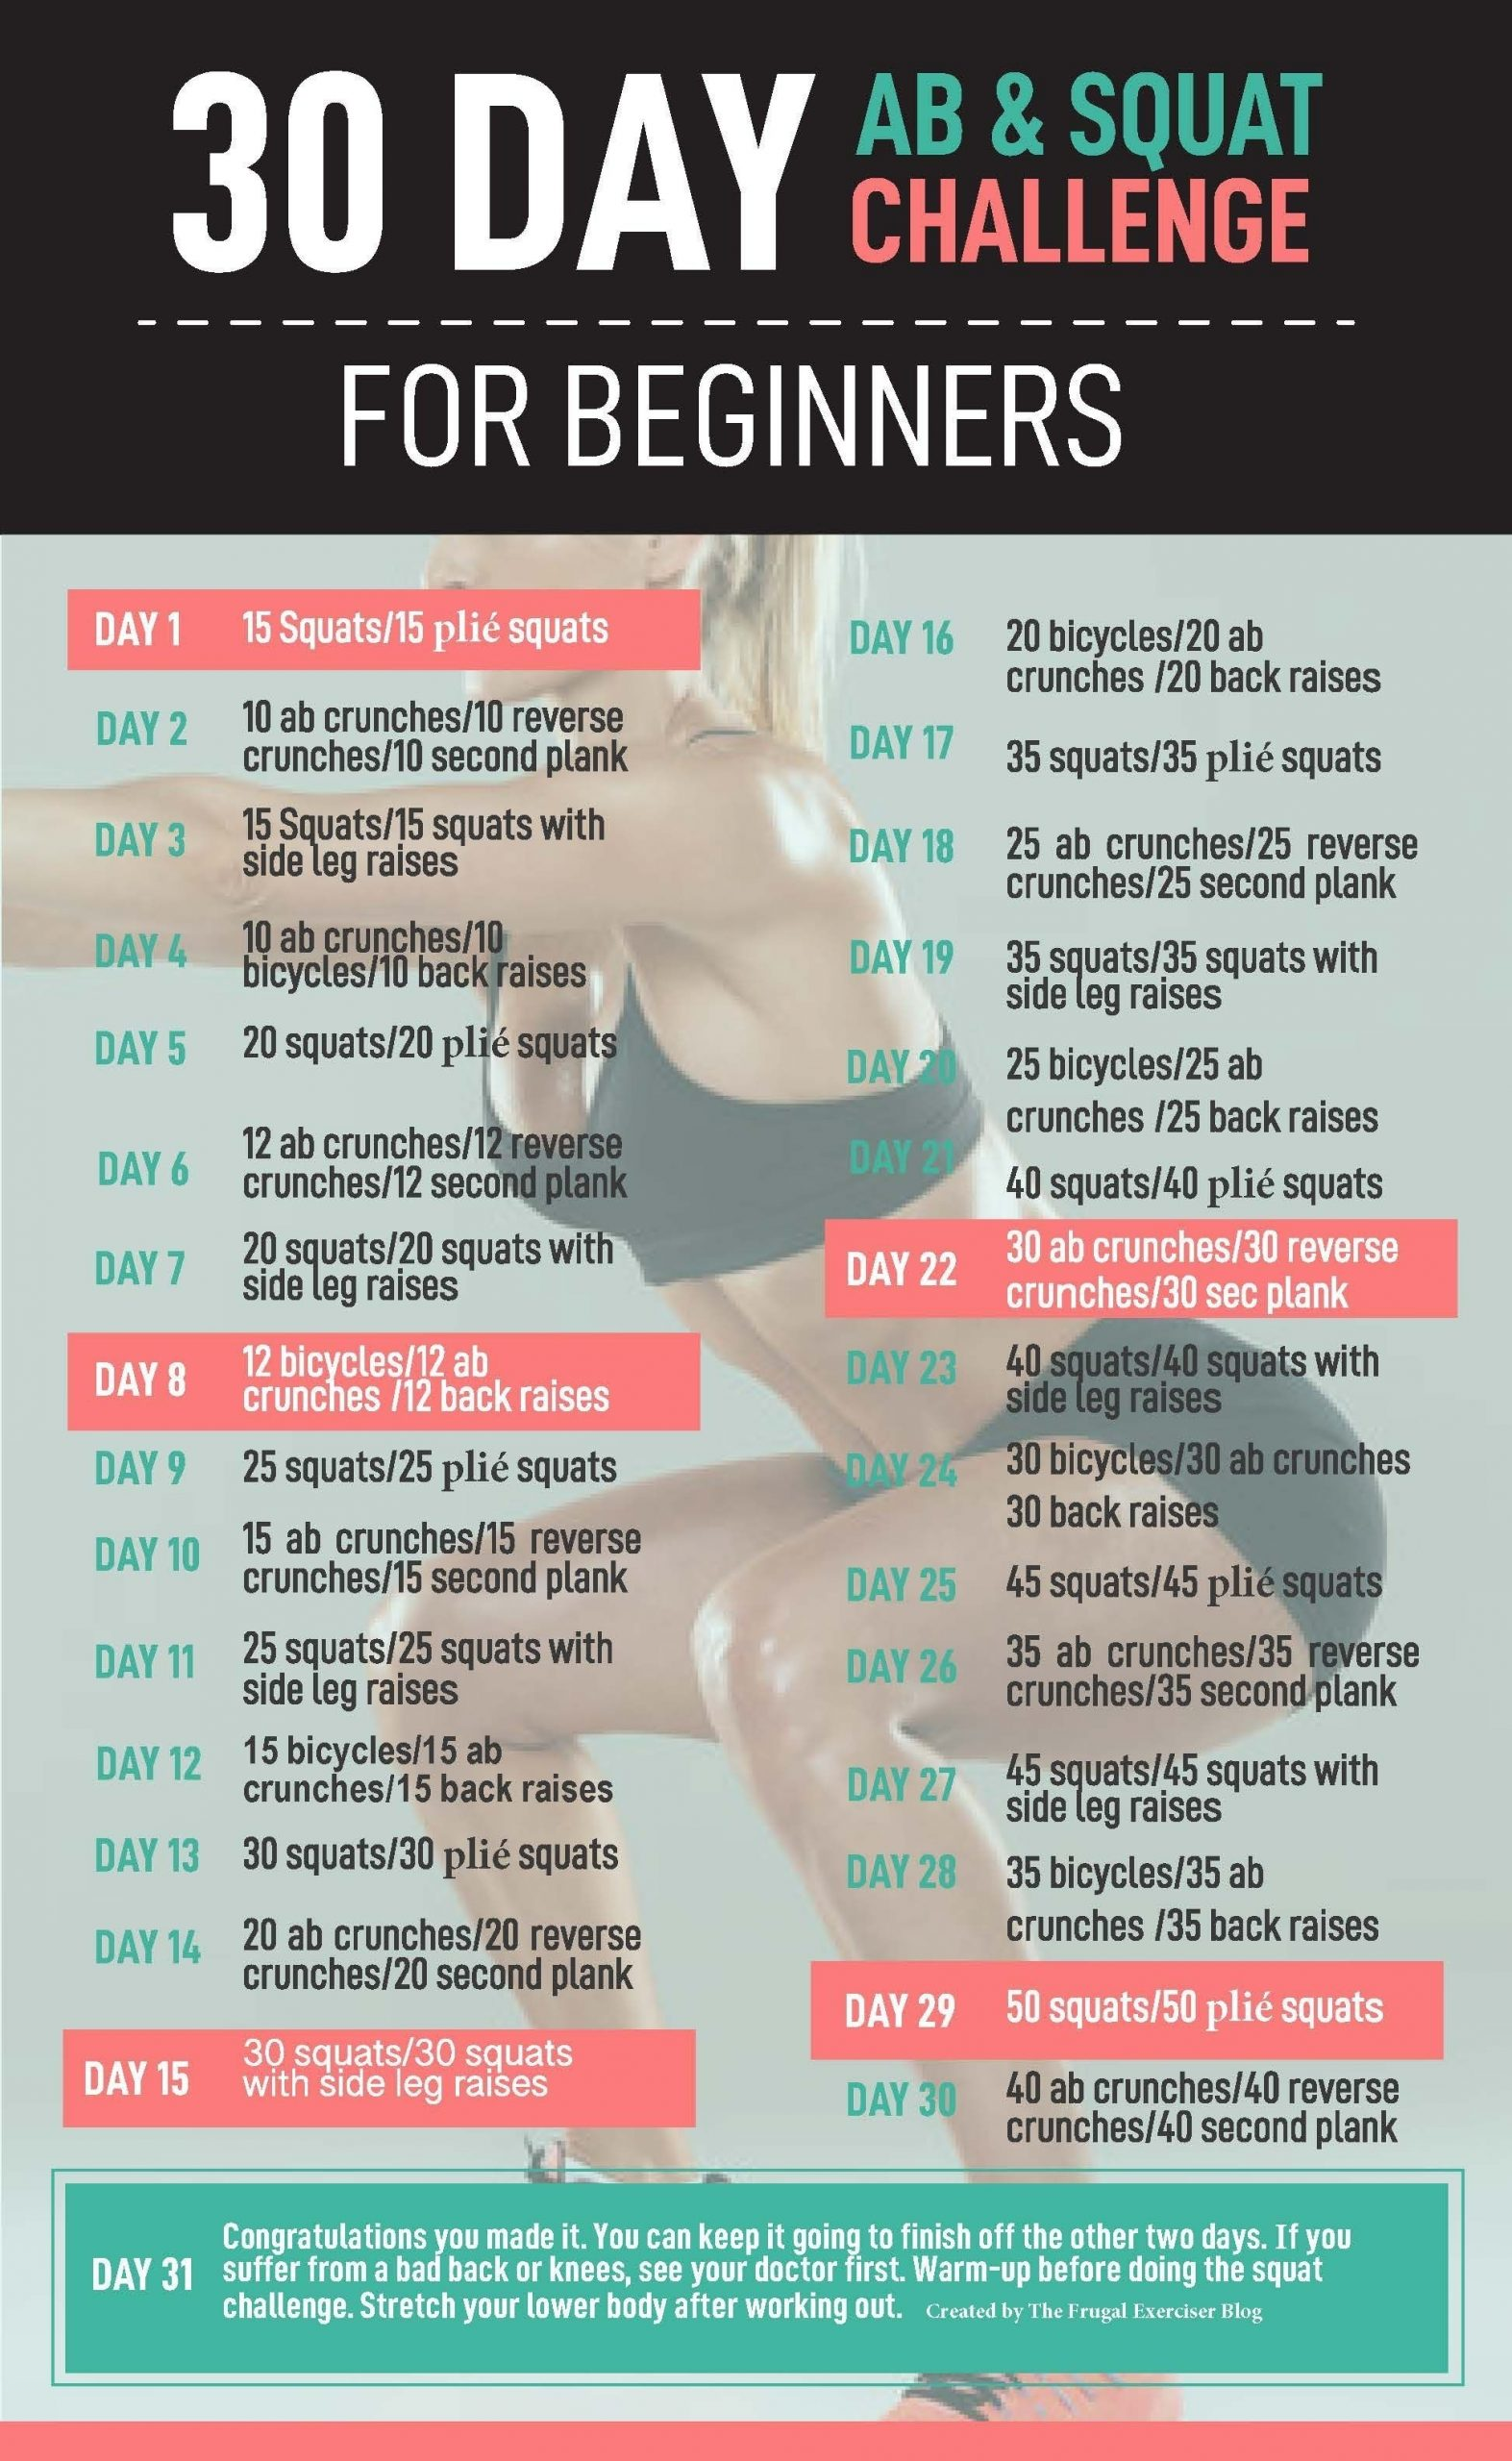 30 Day Ab And Squat Challenge For Beginners | Squat And Ab